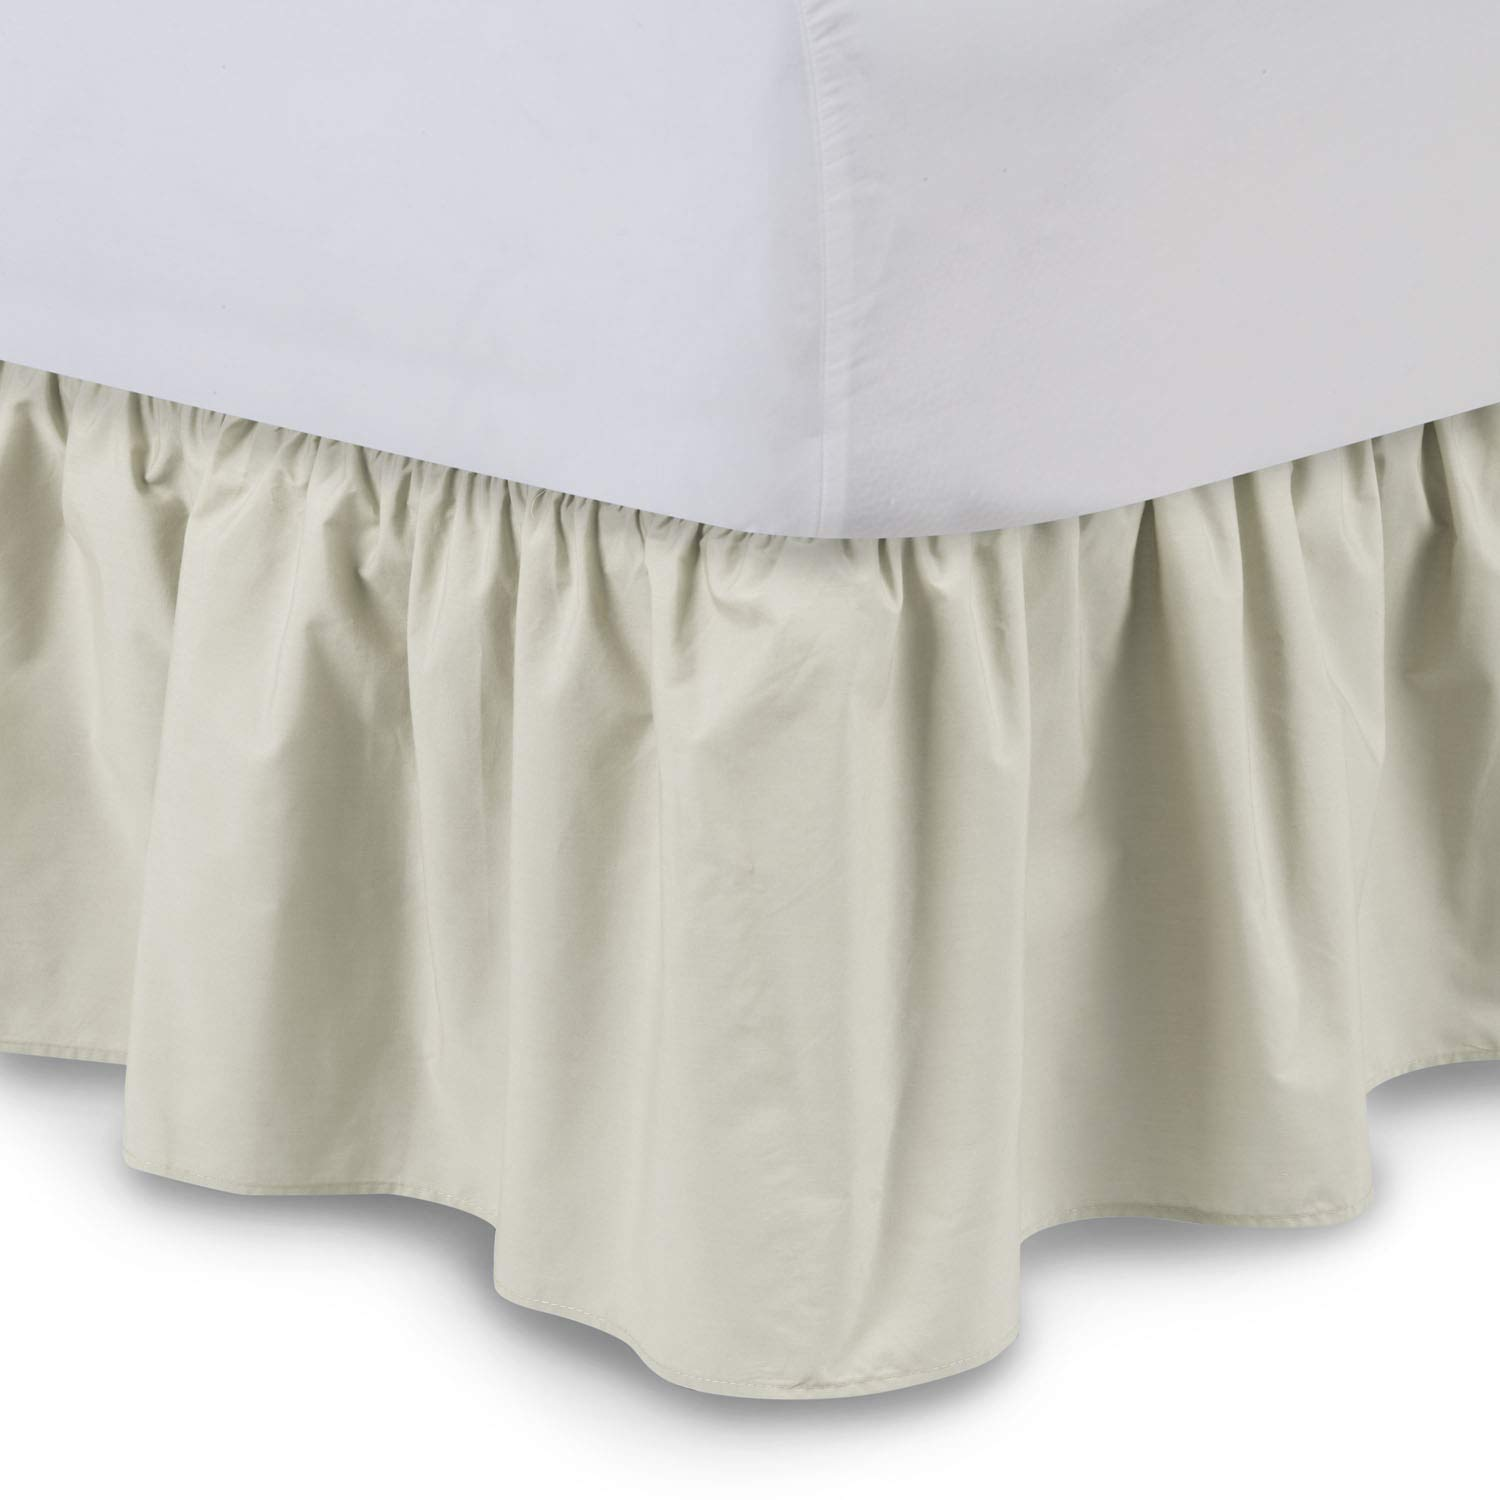 14 Inch Drop Dust Ruffle with Platform by Harmony Lane Wrinkle and Fade Resistant Shop Bedding Ruffled Bed Skirt Full XL, Bone Available in all bed sizes and 16 colors